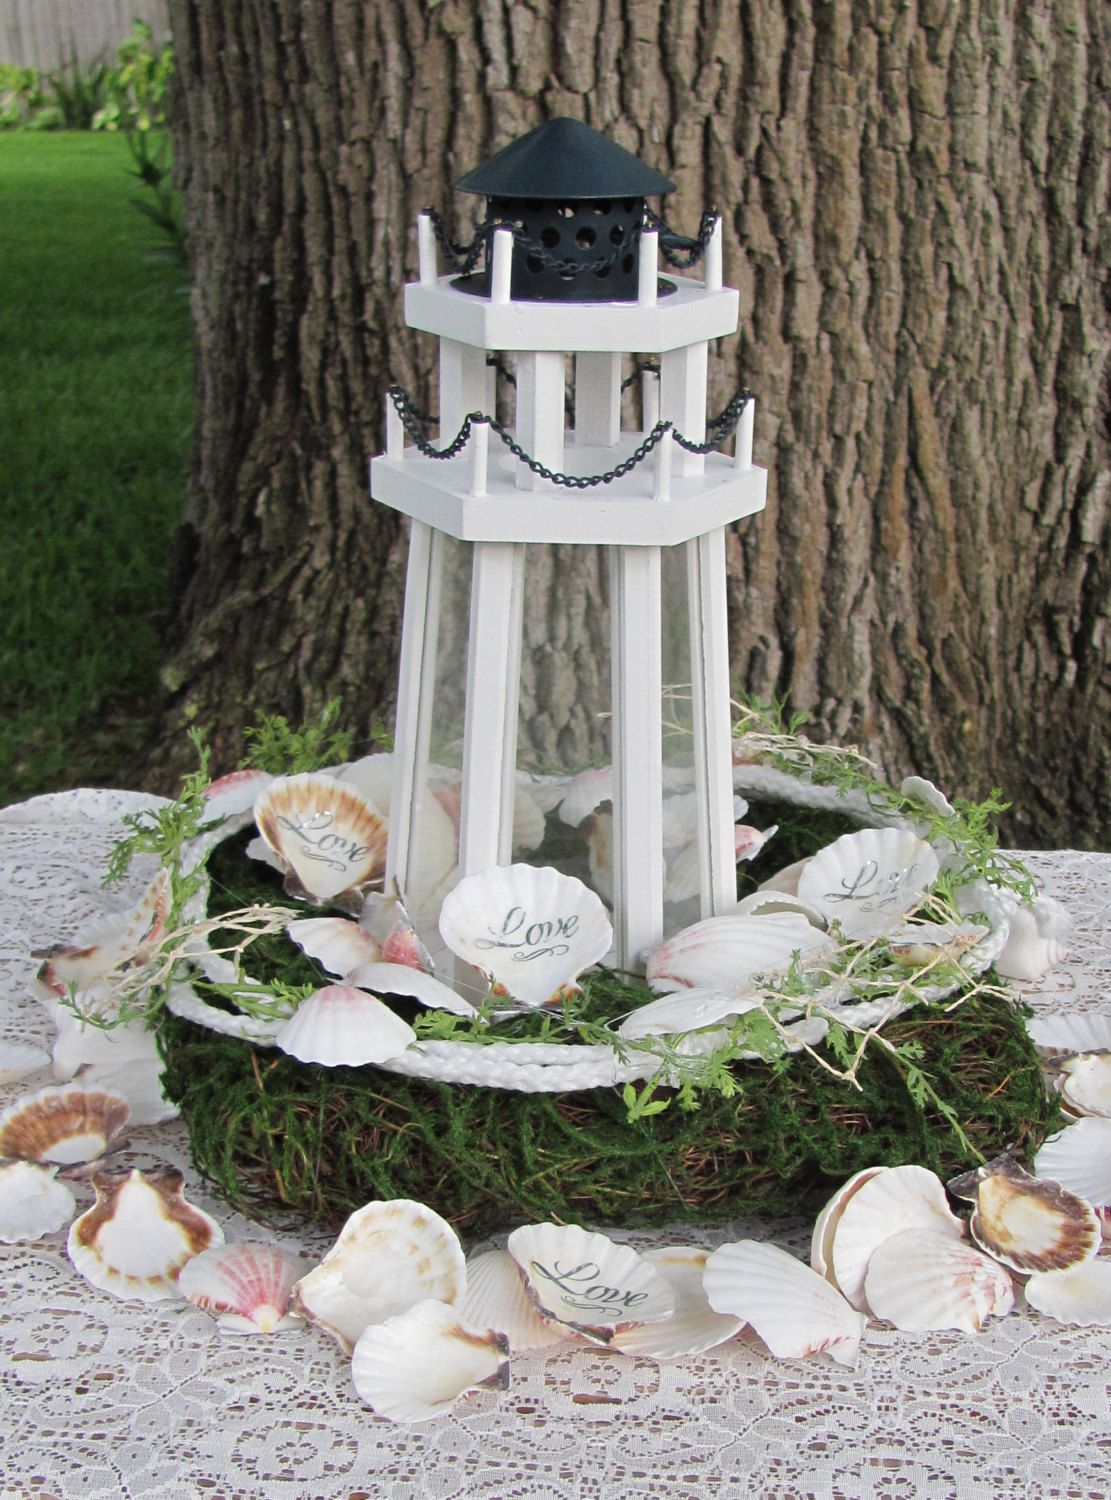 Wedding Centerpieces Lighthouse Ideal For Wedding Reception Table  Centerpieces LightHouse Love Centerpiece Optional Love Shells And